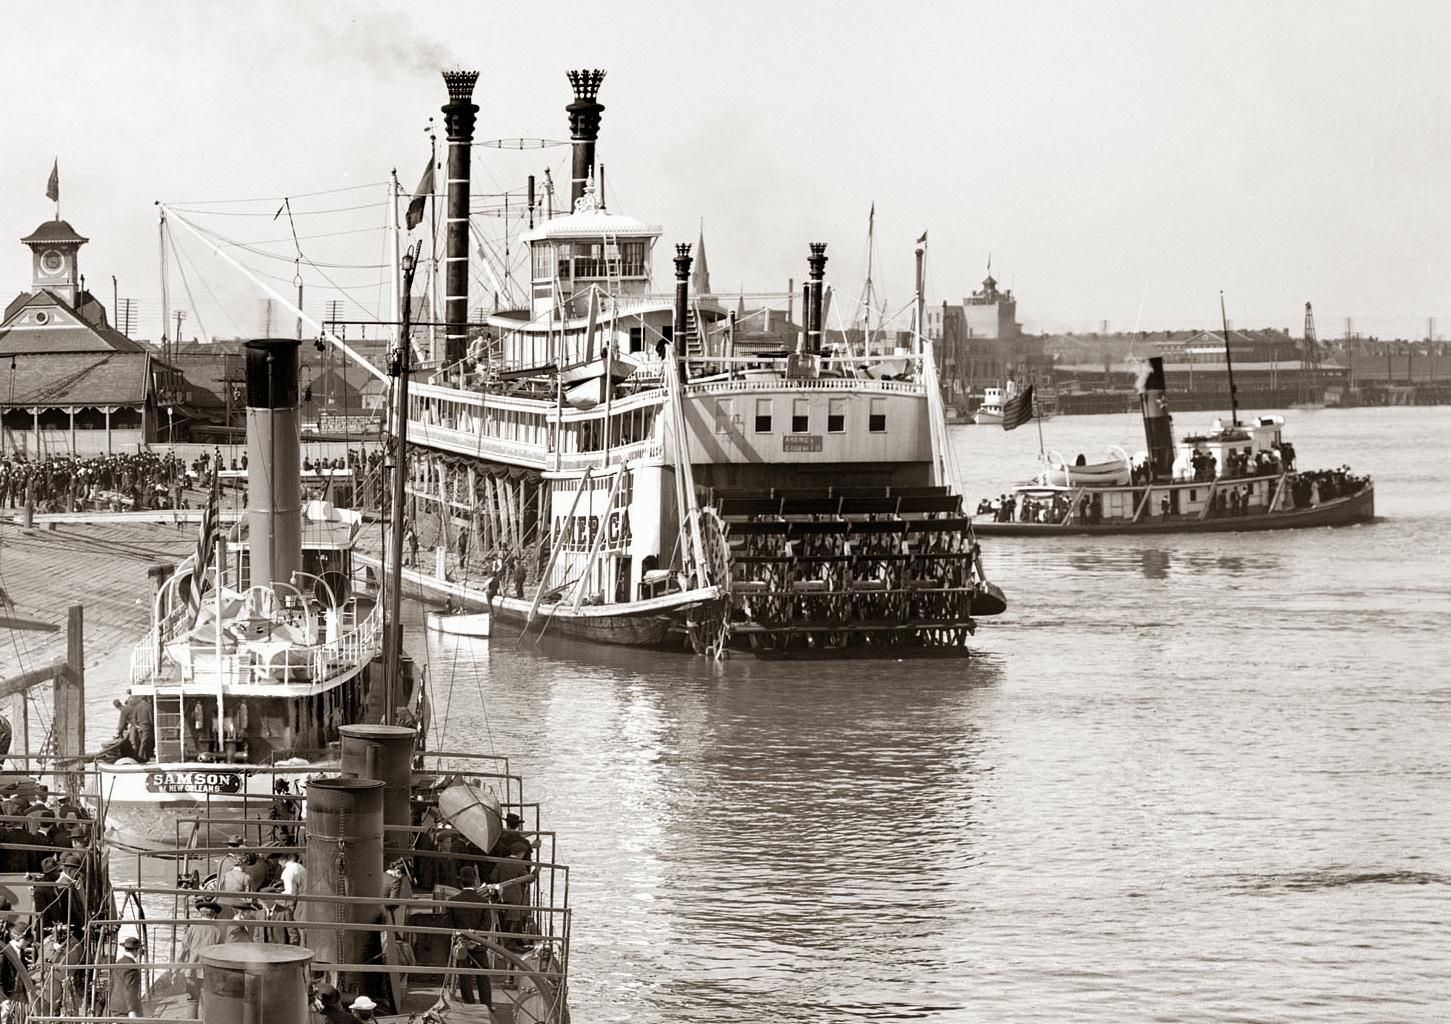 AMERICA1906DetroitPubdetailWith2Towboats